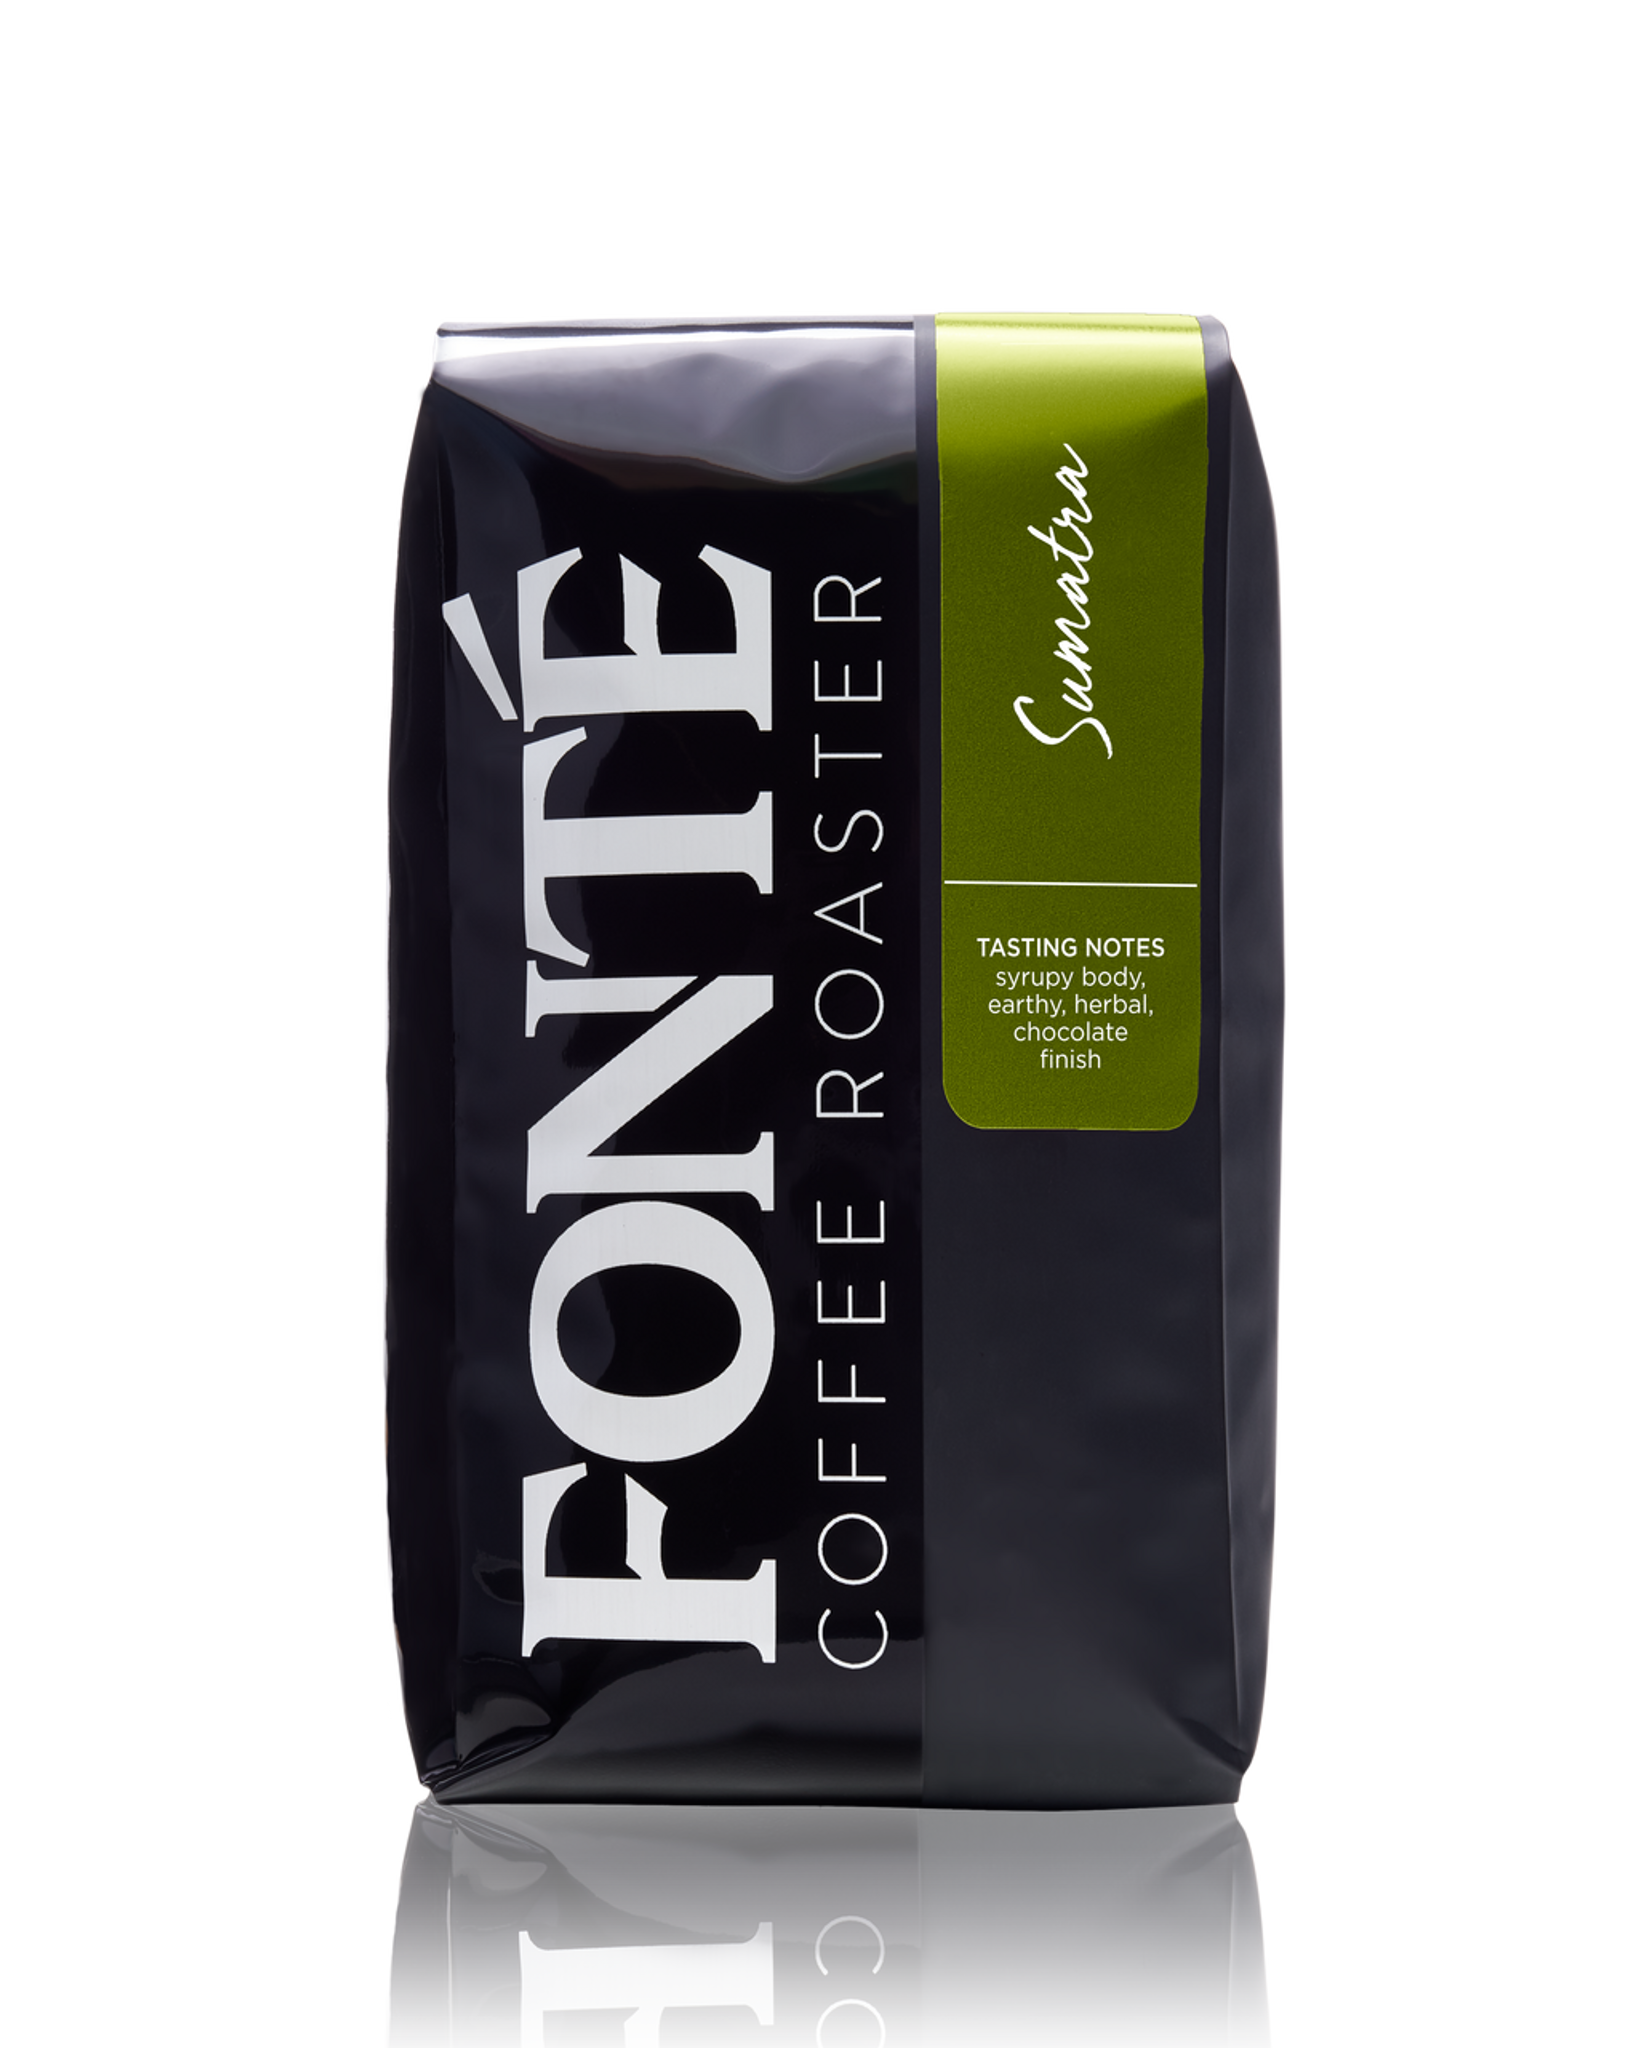 Buy Fonte Sumatra Single Origin  Available as Whole Bean, French Press, Drip, Melitta, Home Espresso, Commercial Espresso, and Turkish Coffee